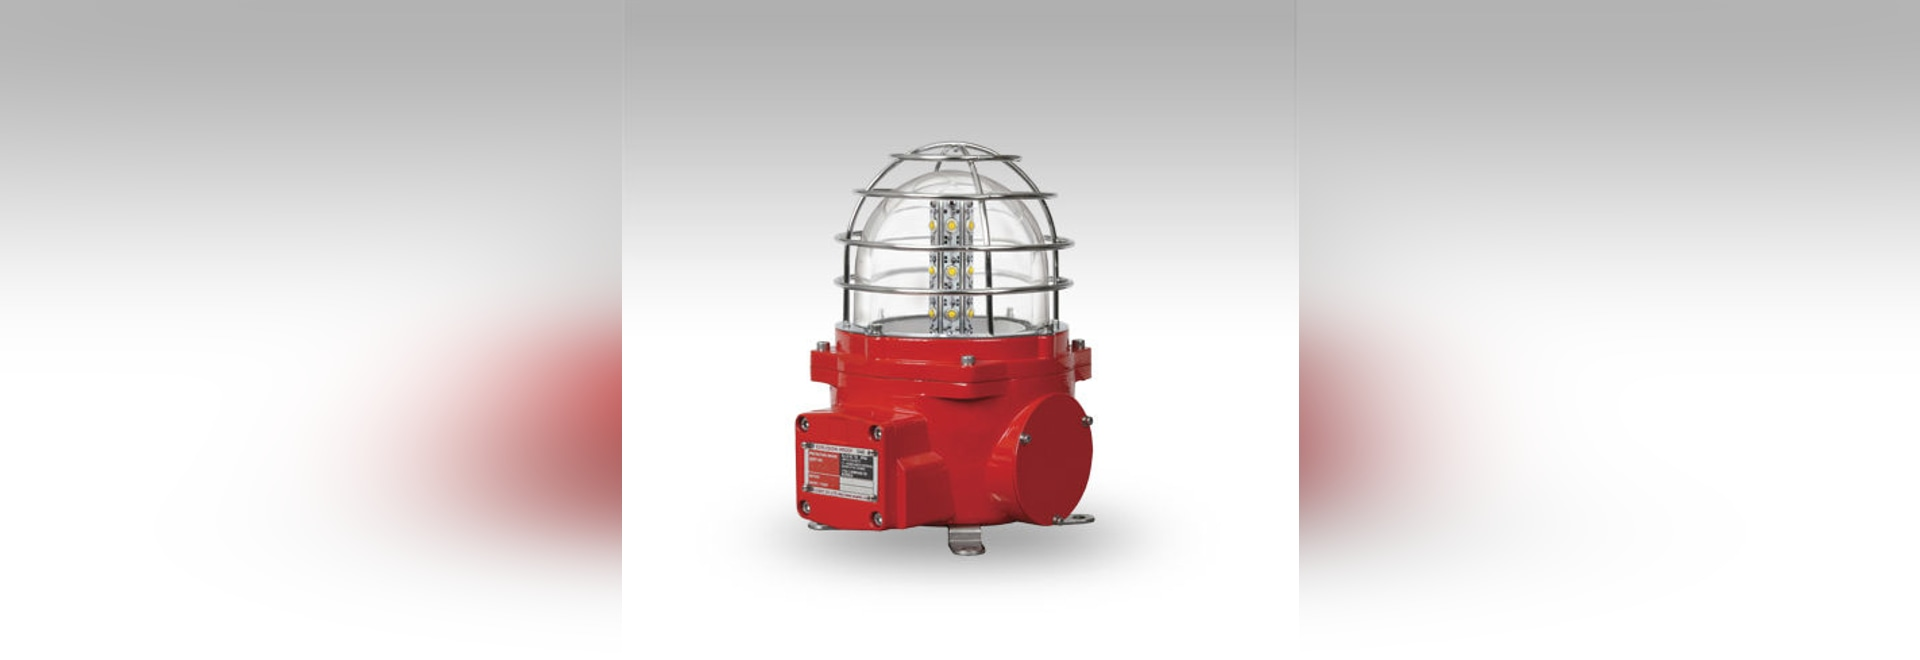 NEW: low intensity obstruction light by QLight